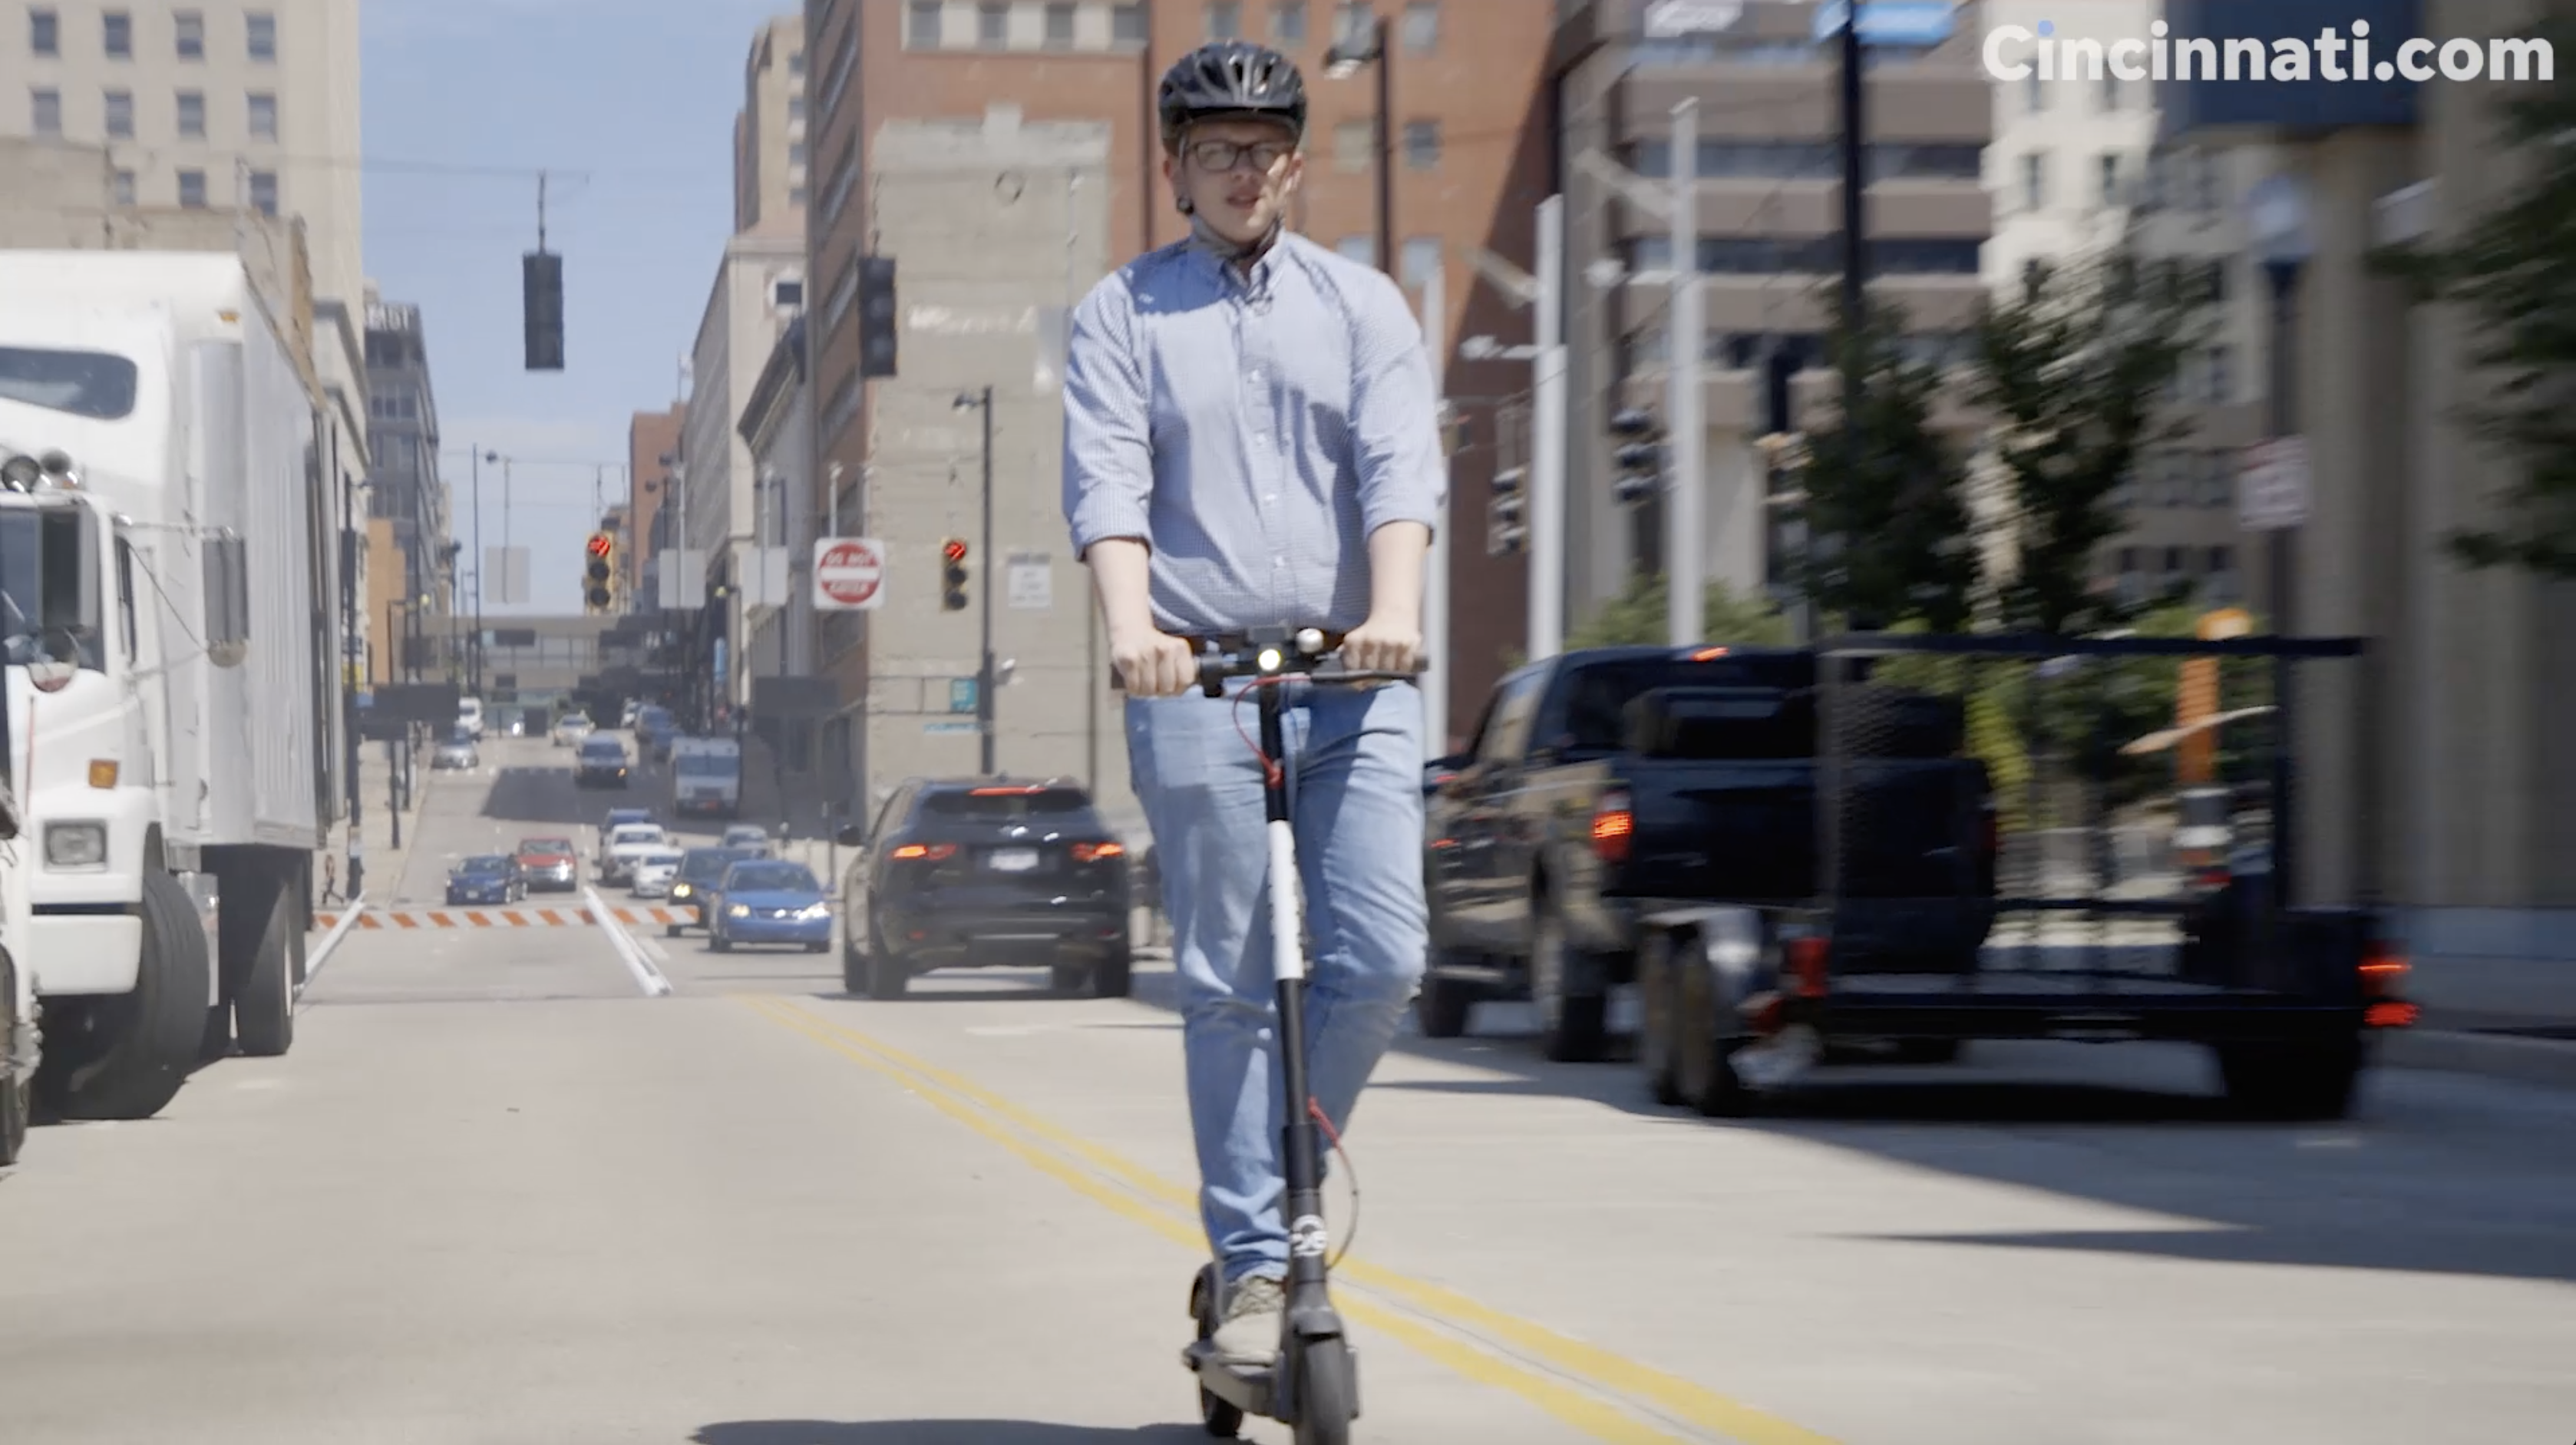 The Enquirer test drives the new public scooters downtown